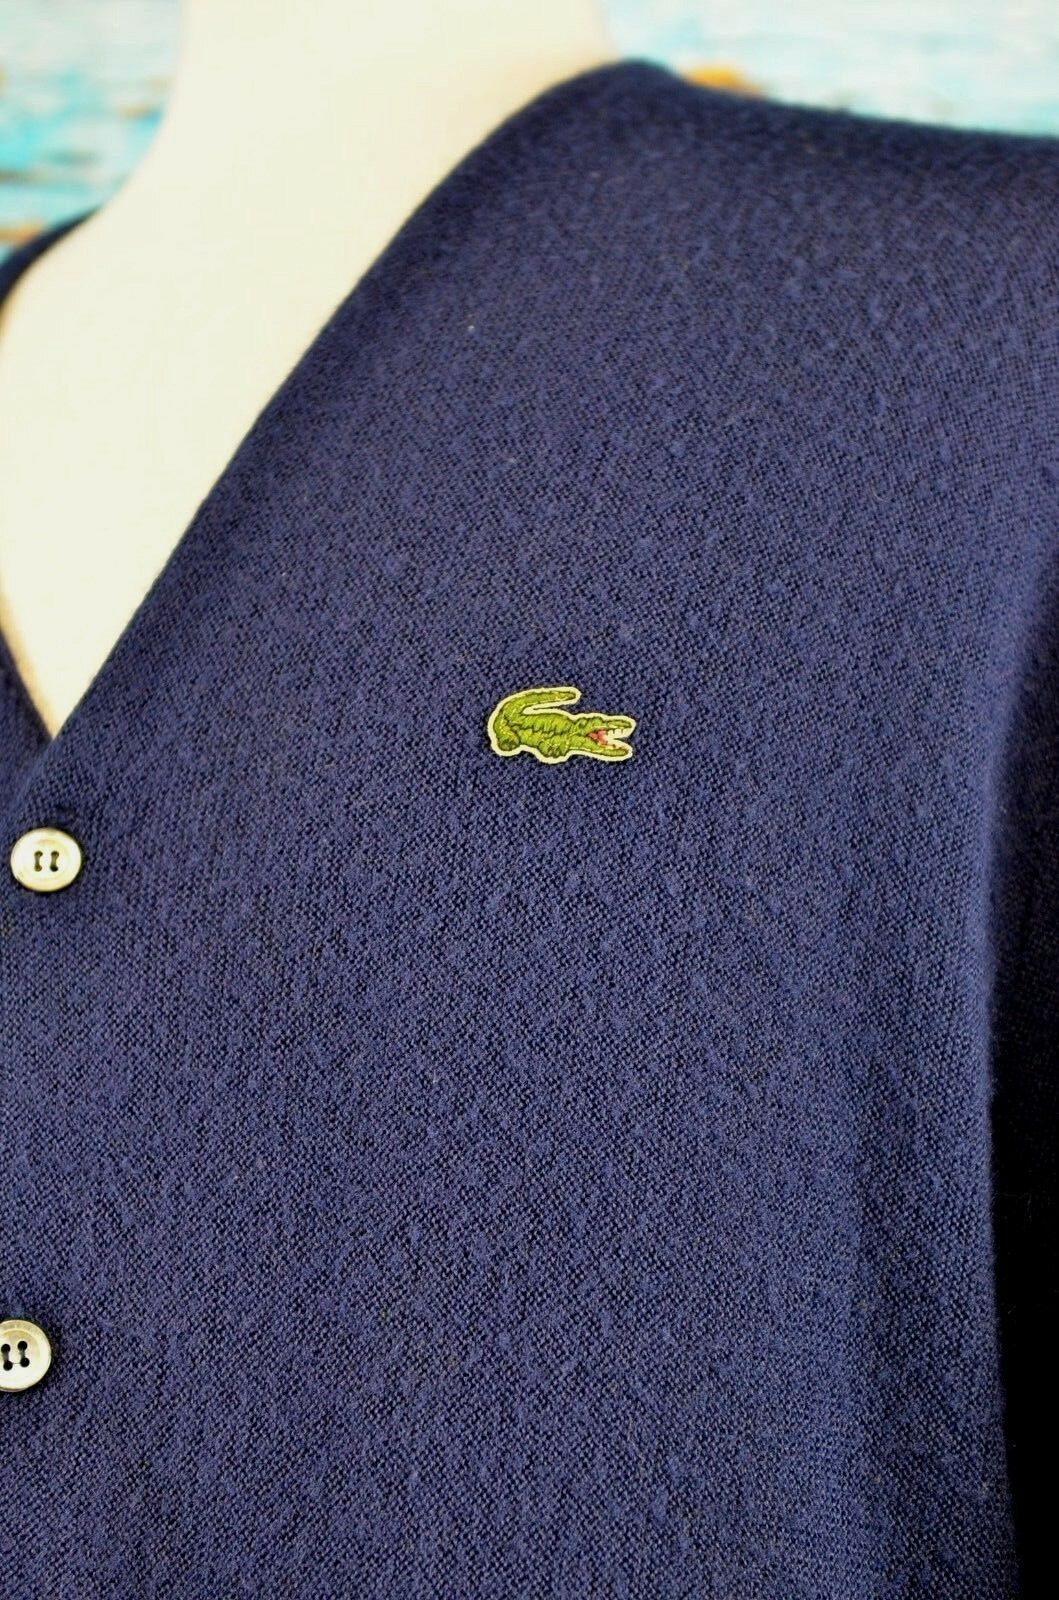 IZOD Lacoste Men's Cardigan Sweater Size XL Navy bluee USA Vintage Hipster Cool